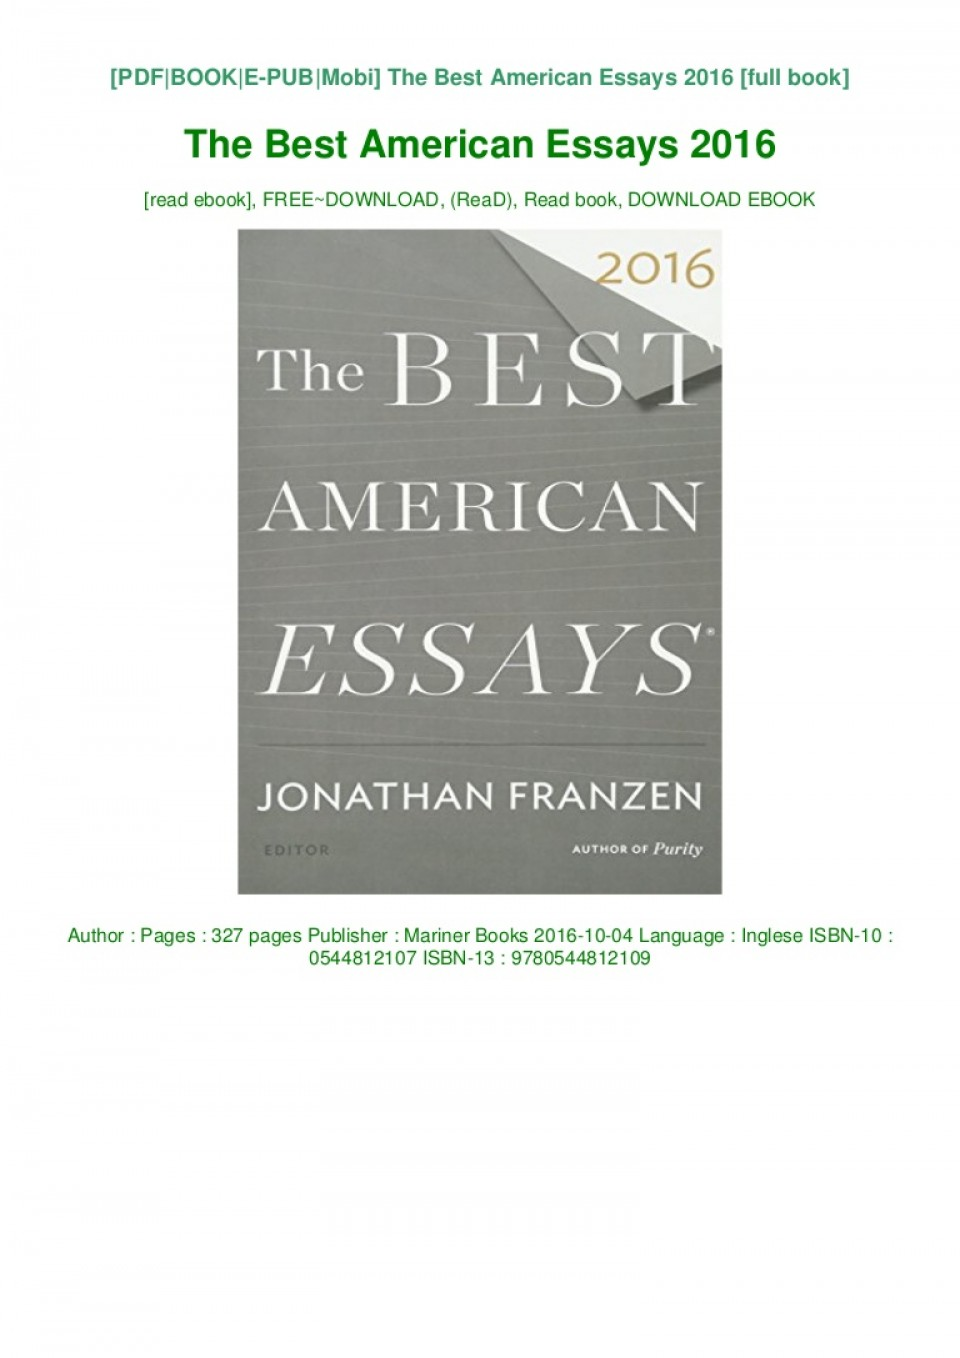 014 The Best American Essays Essay Example Download Pdf Epub Audiobook Ebook Thumbnail Wonderful 2018 2017 Table Of Contents 2015 Free 960